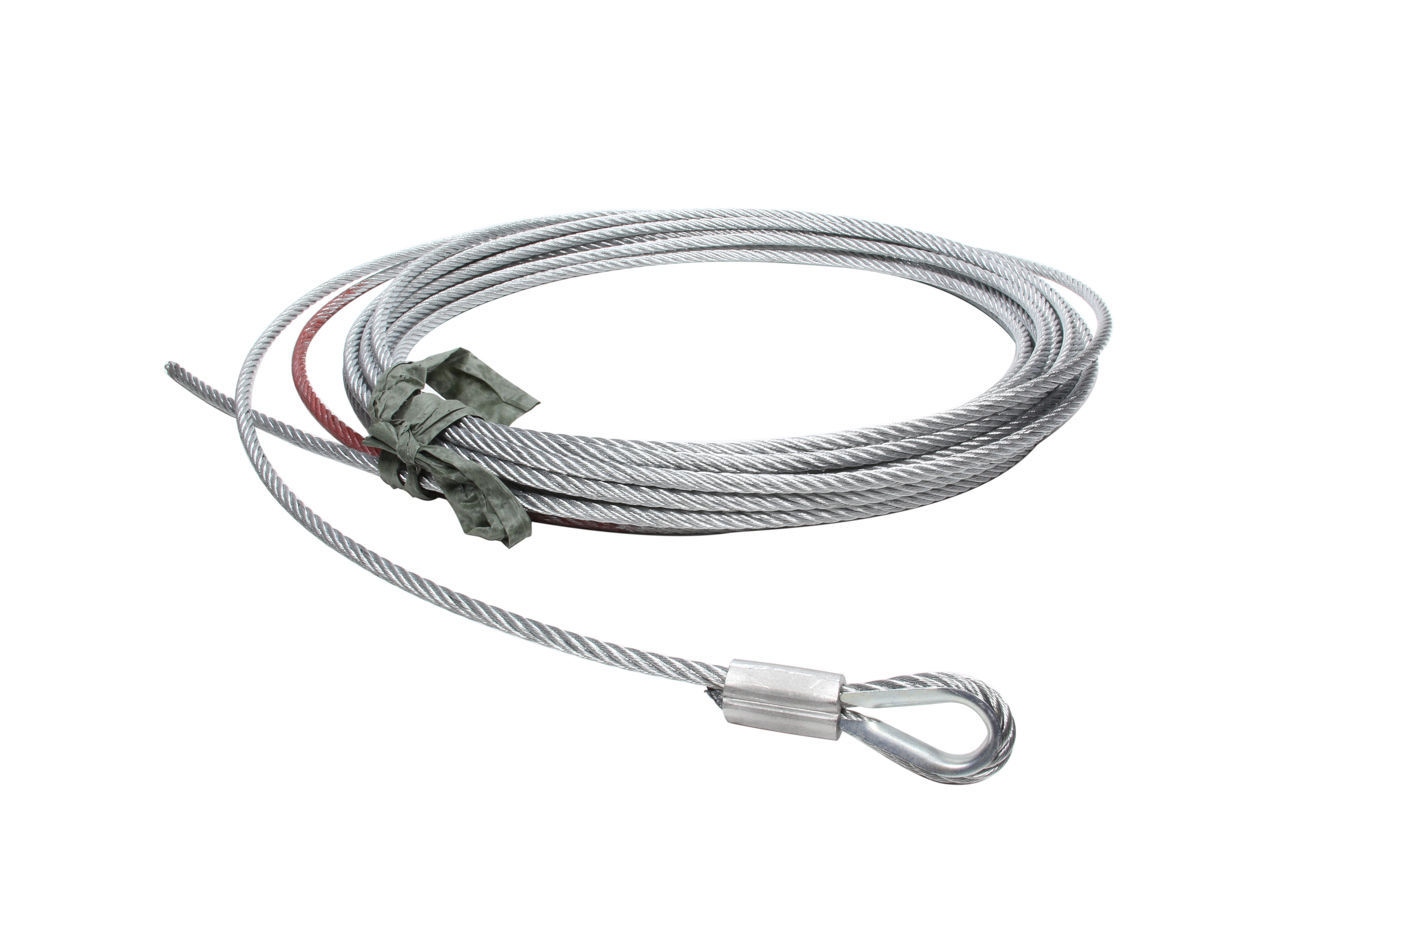 Superwinch Replacement Wire Rope 5/16in x 55ft Fits S7500